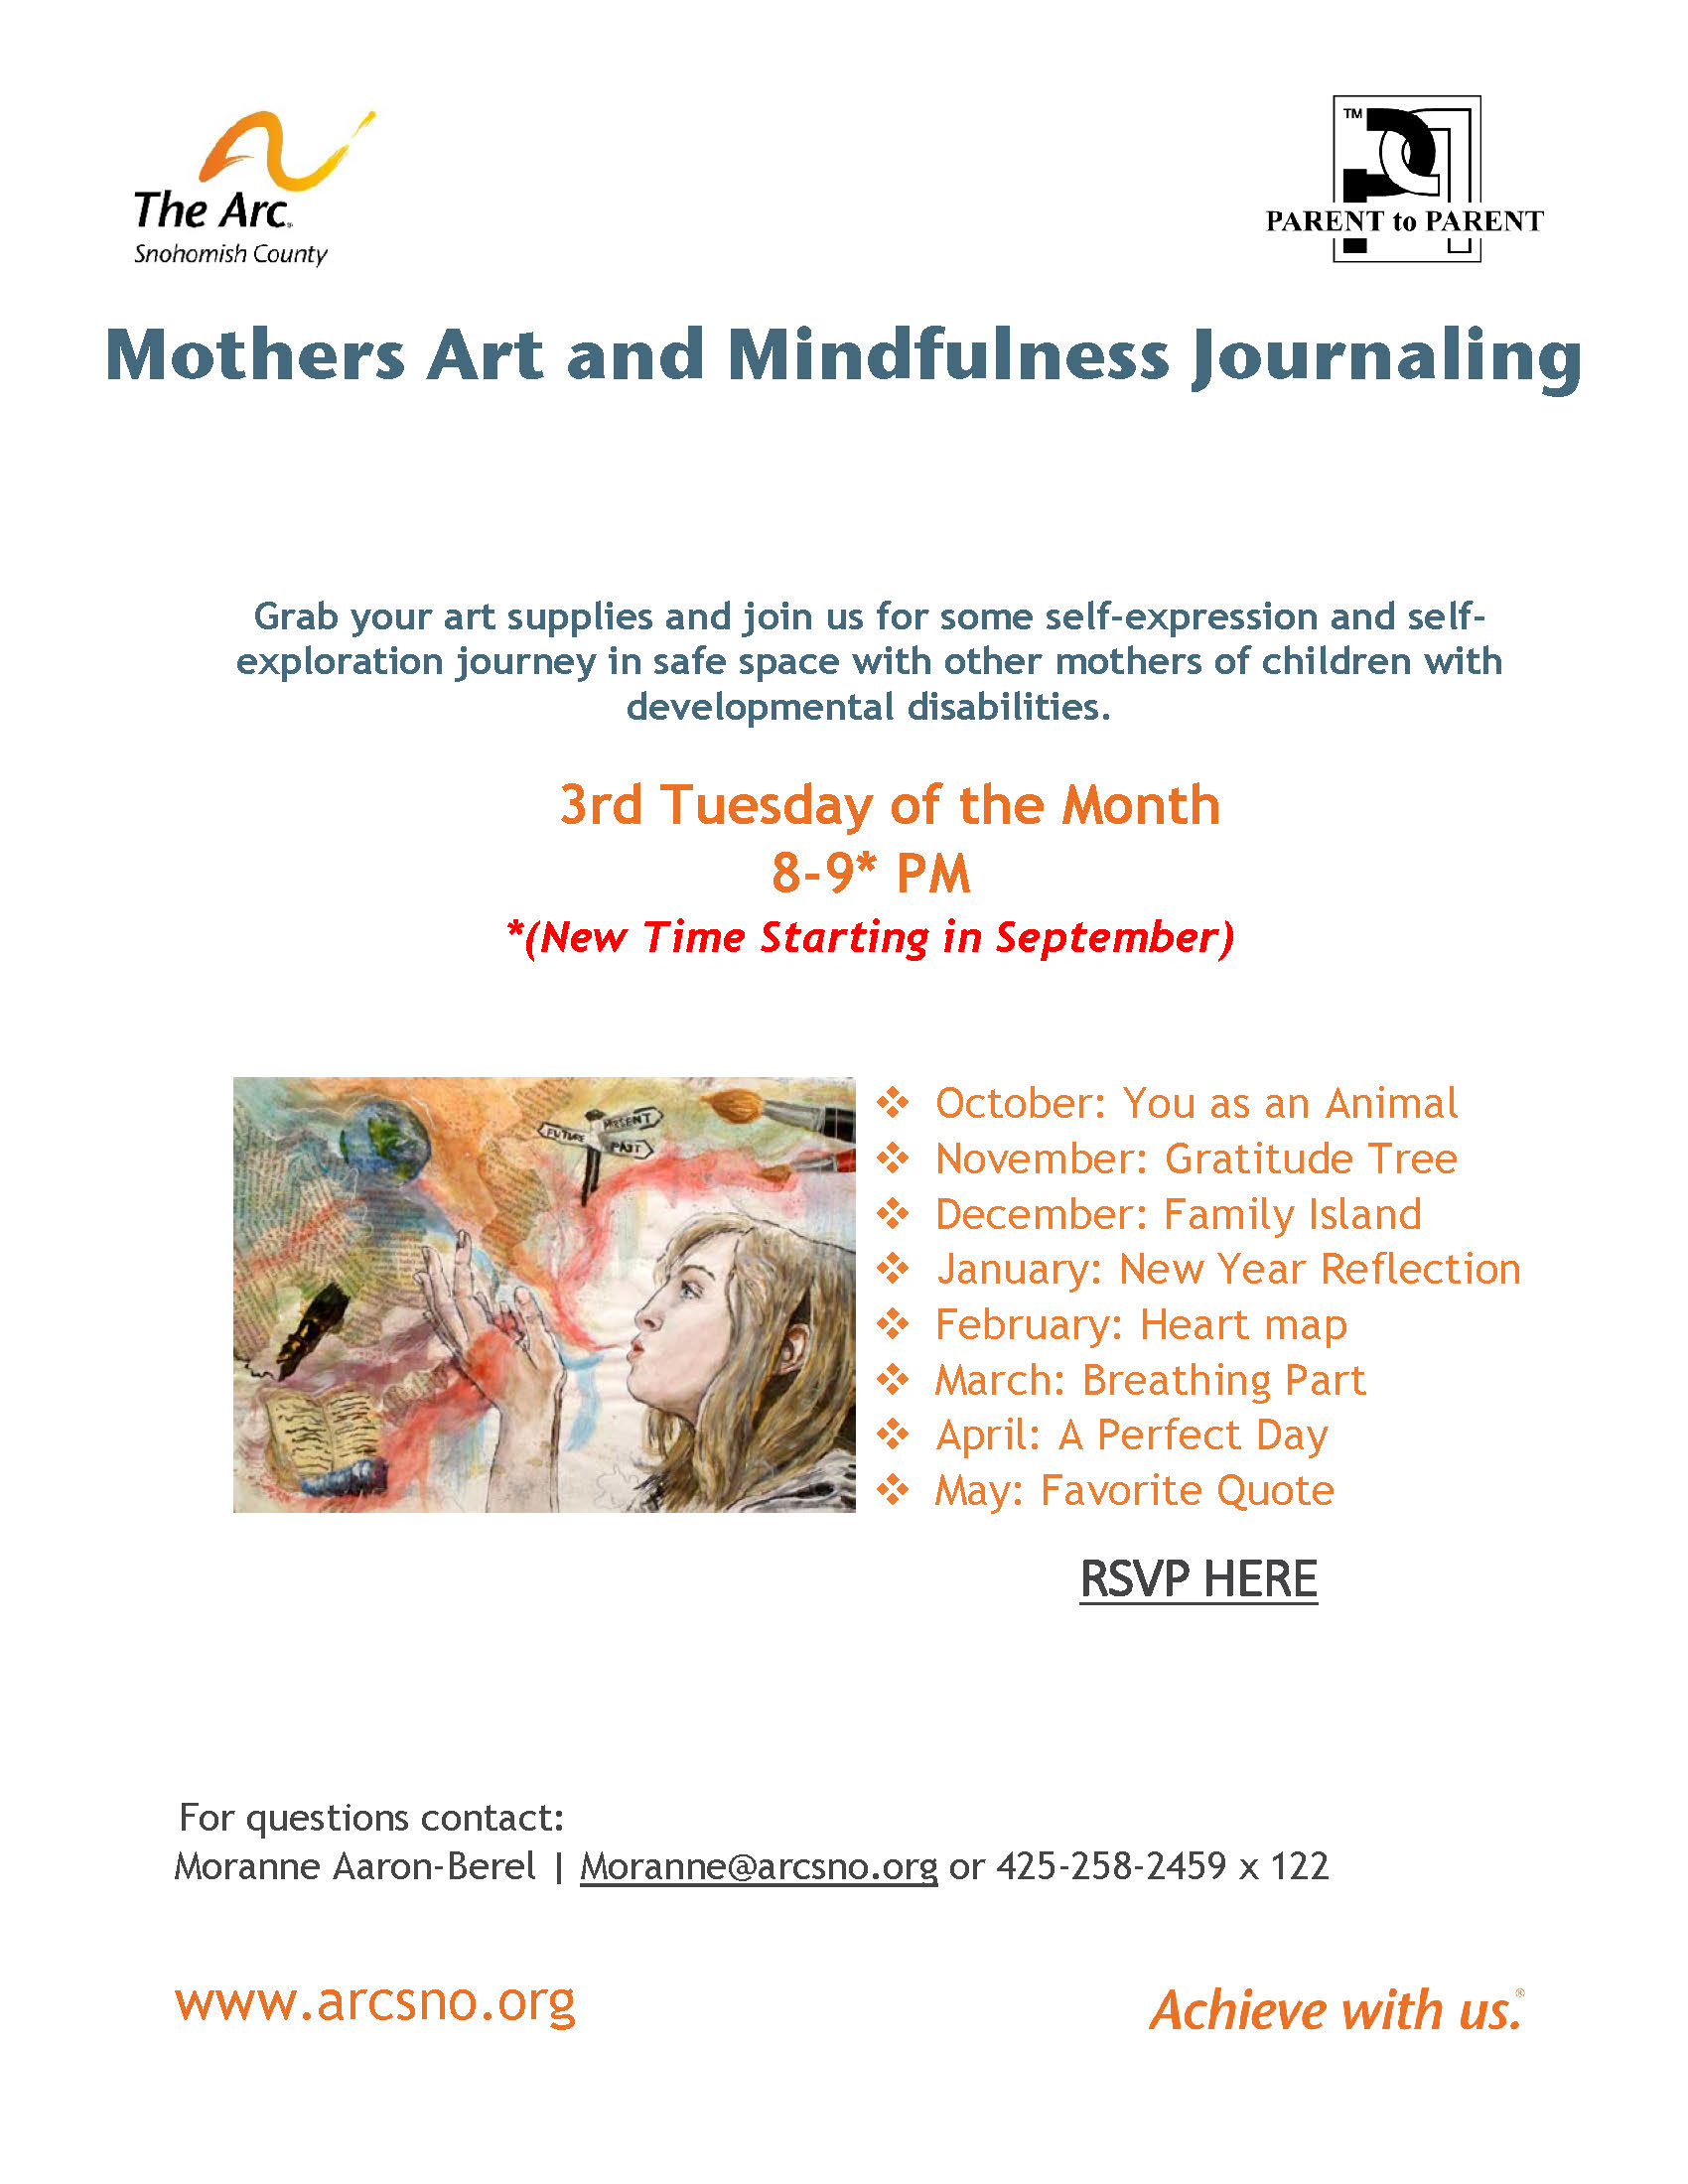 Mothers Art and Mindfulness Journaling September